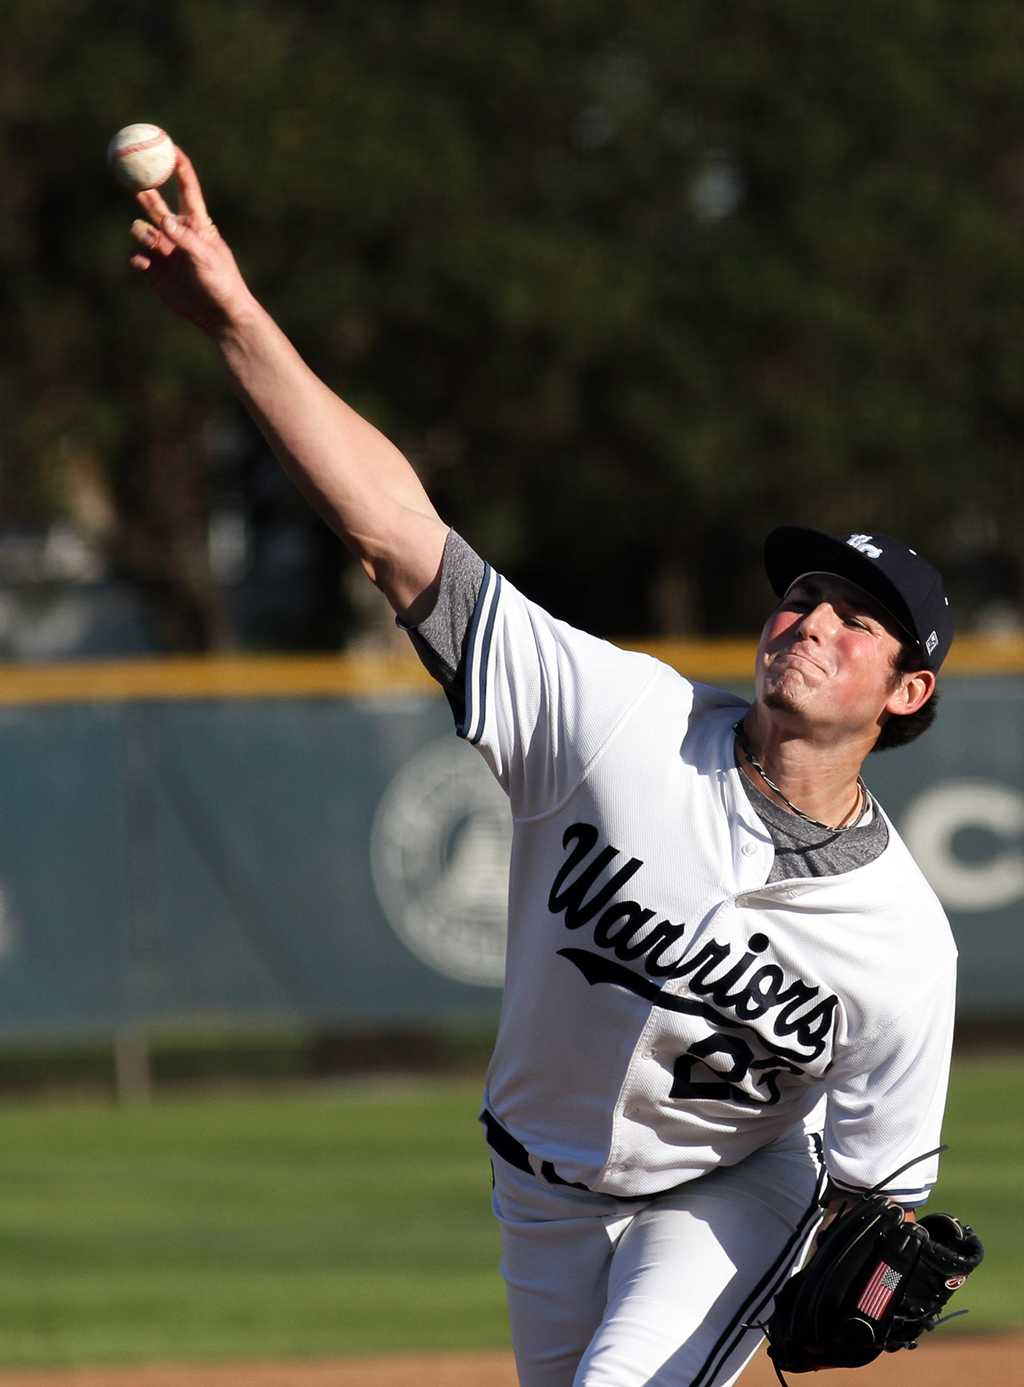 Kevin McMahon, pitcher for the Warriors, delivers a pitch in the top of the sixth inning of the Warriors Feb. 22 home game against Imperial Valley College.